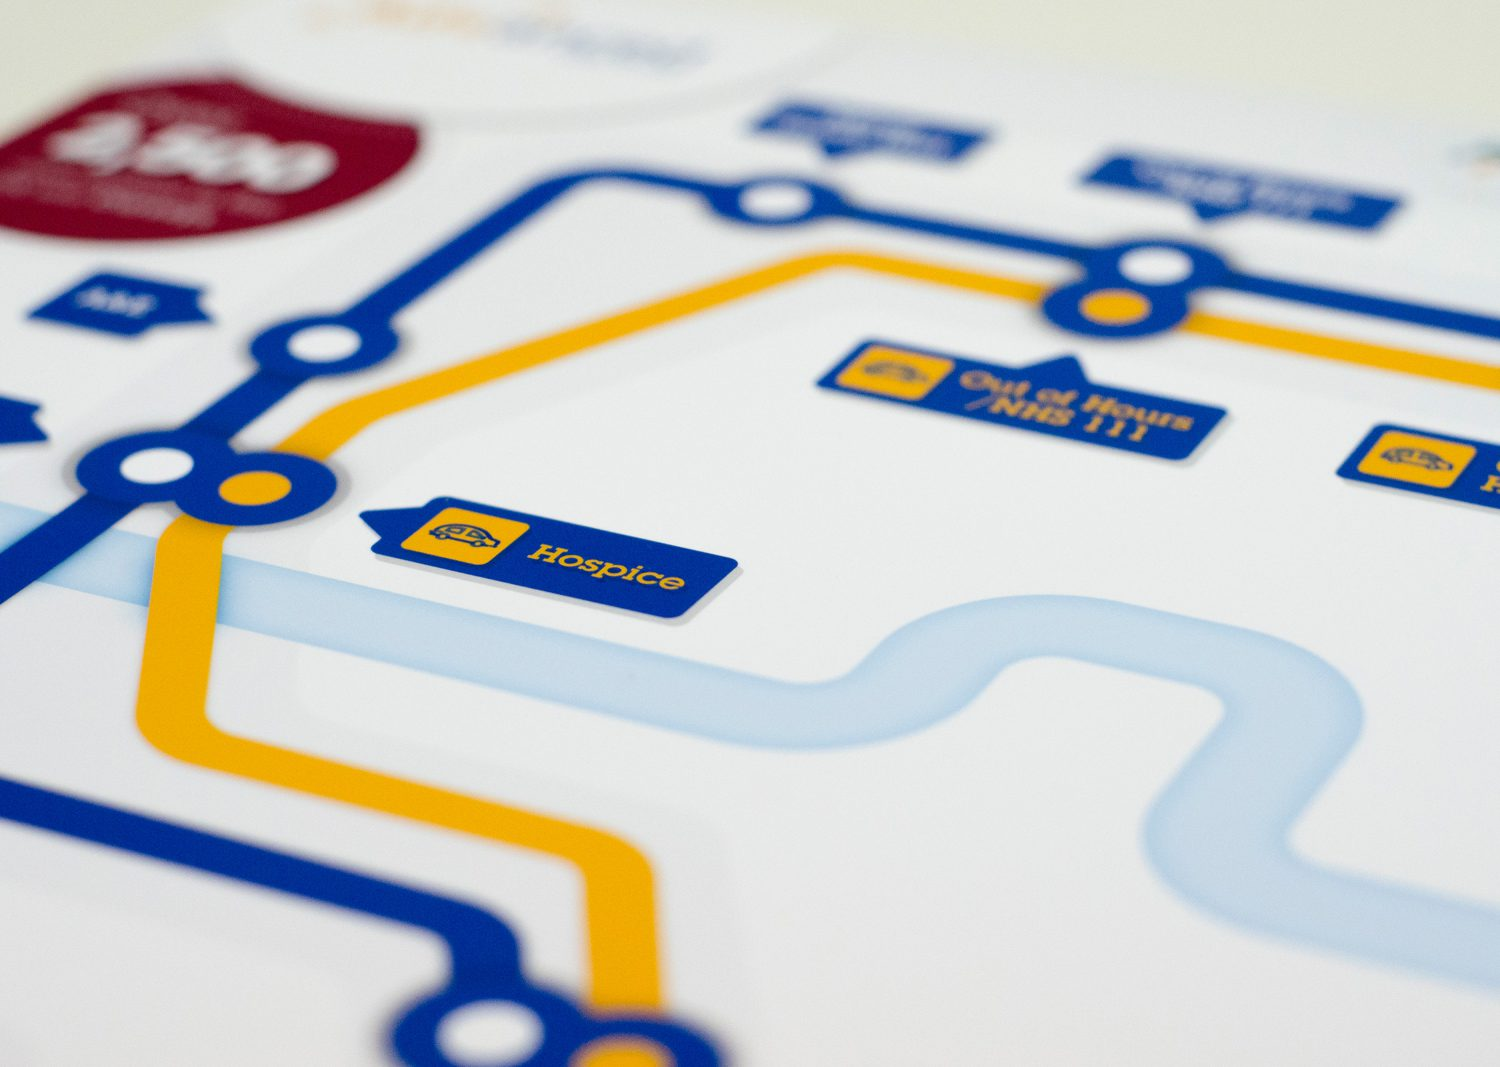 advanced-info-tube-map-closeup